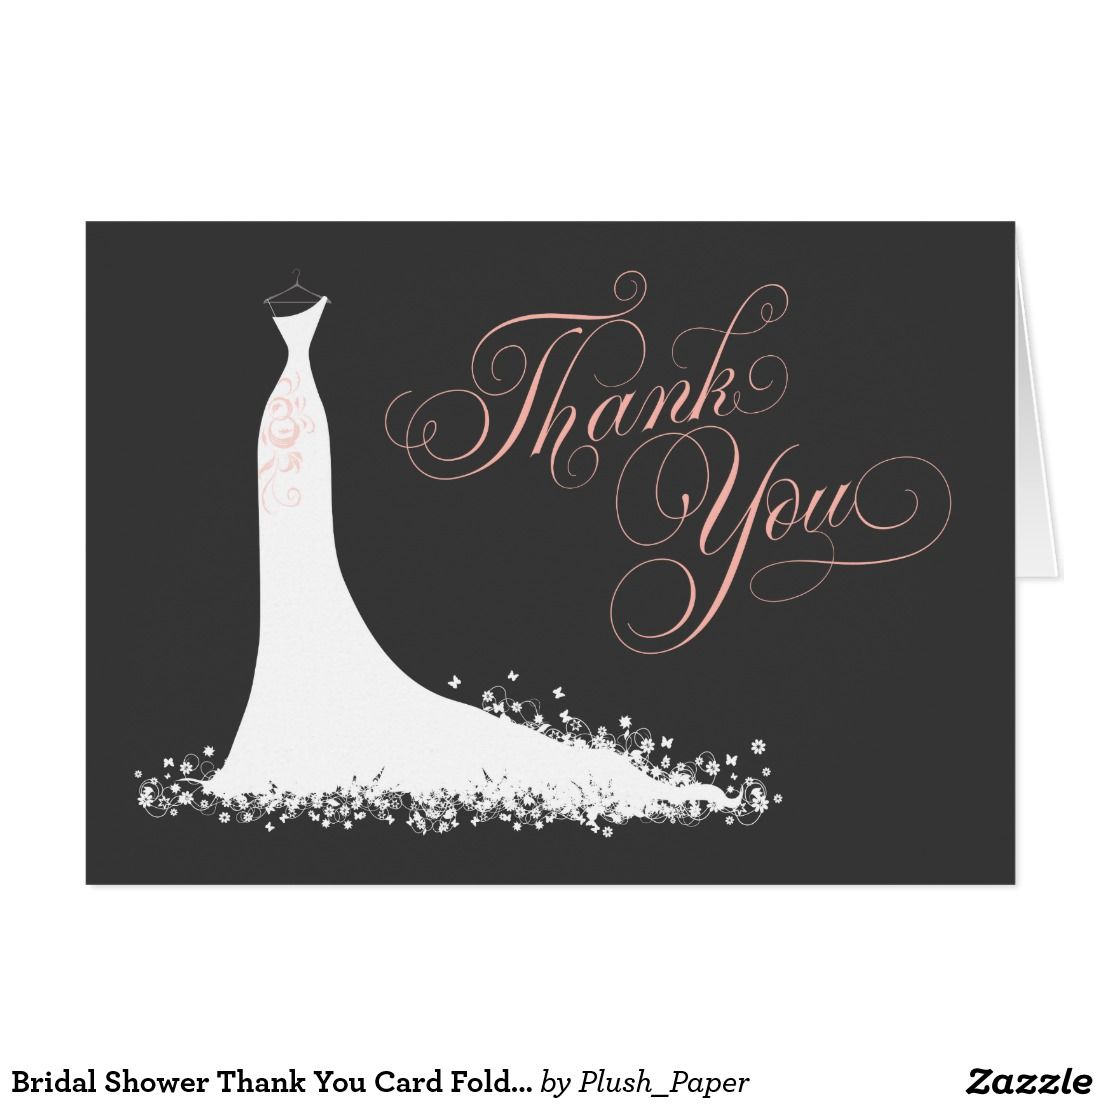 wedding custom thank you cards%0A Bridal Shower Thank You Card Folded   Wedding Gown